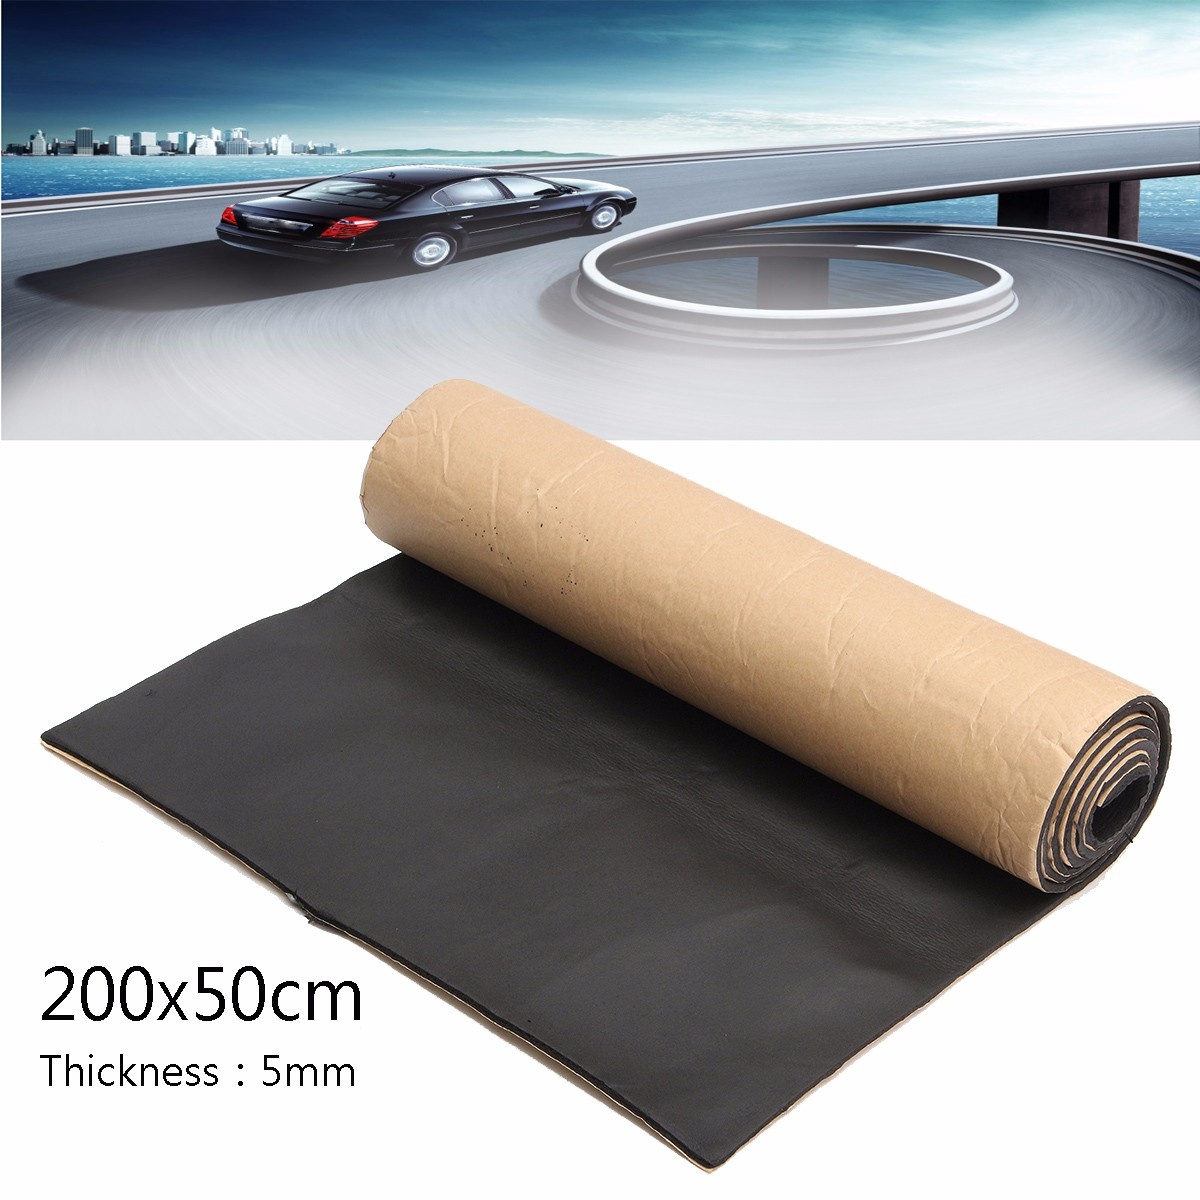 1-roll-200x50cm-36sqft-car-auto-sound-deadening-cotton-heat-insulation-pad-foam-material-automobiles-interior-accessories